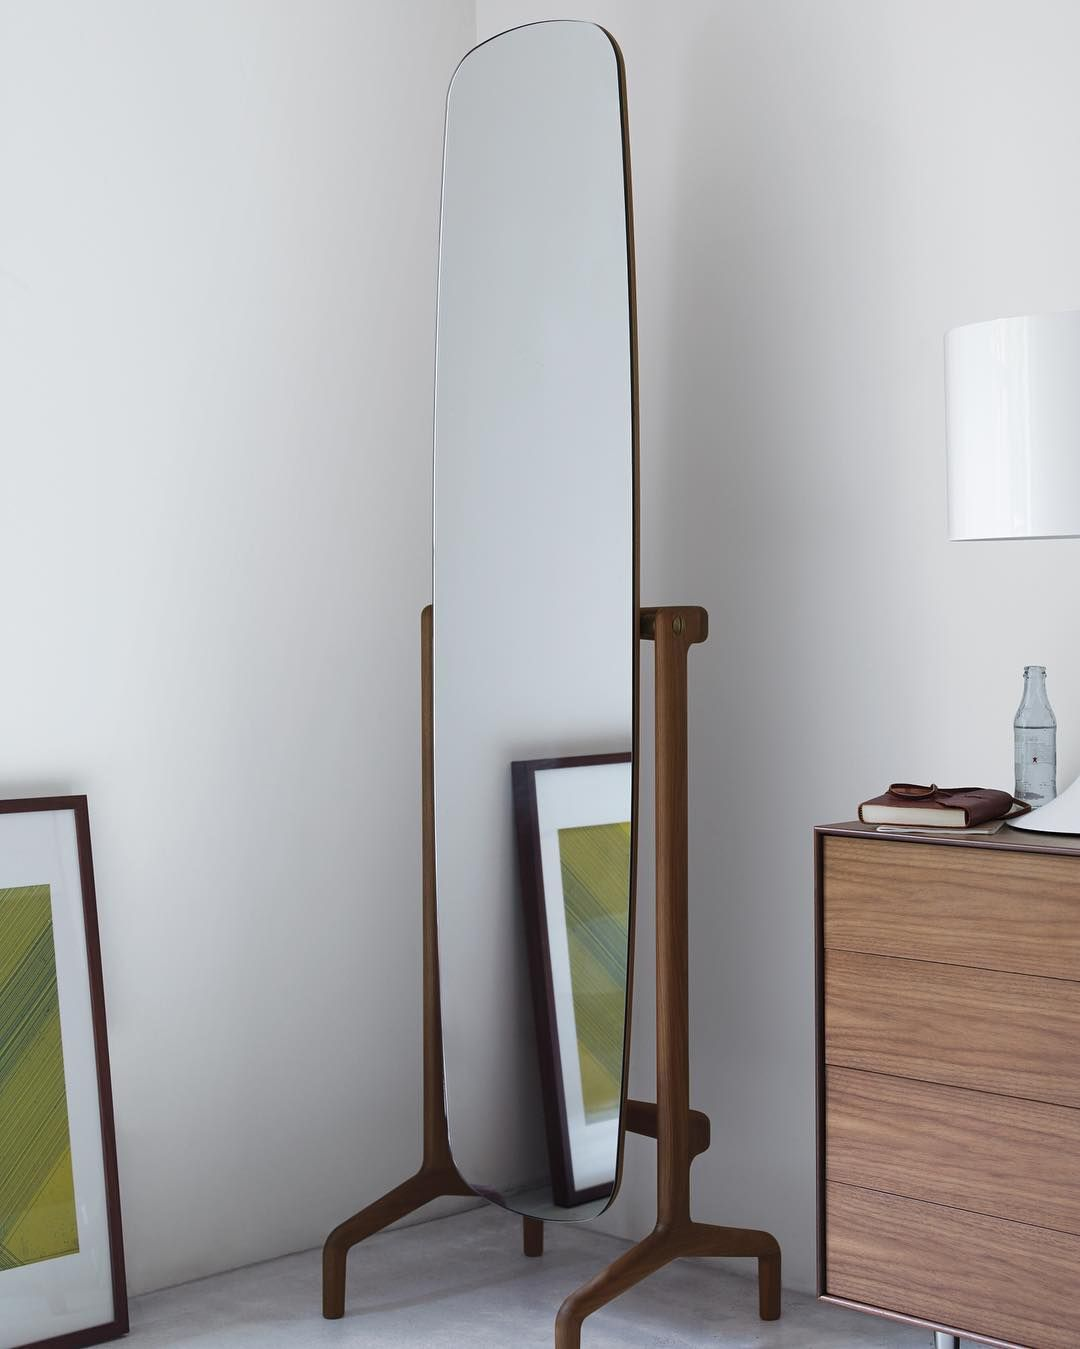 Design Within Reach On Instagram Beautiful You On One Side Stunning Canaletto Walnut On The Other D Mirror Designs Aesthetic Room Decor Design Within Reach